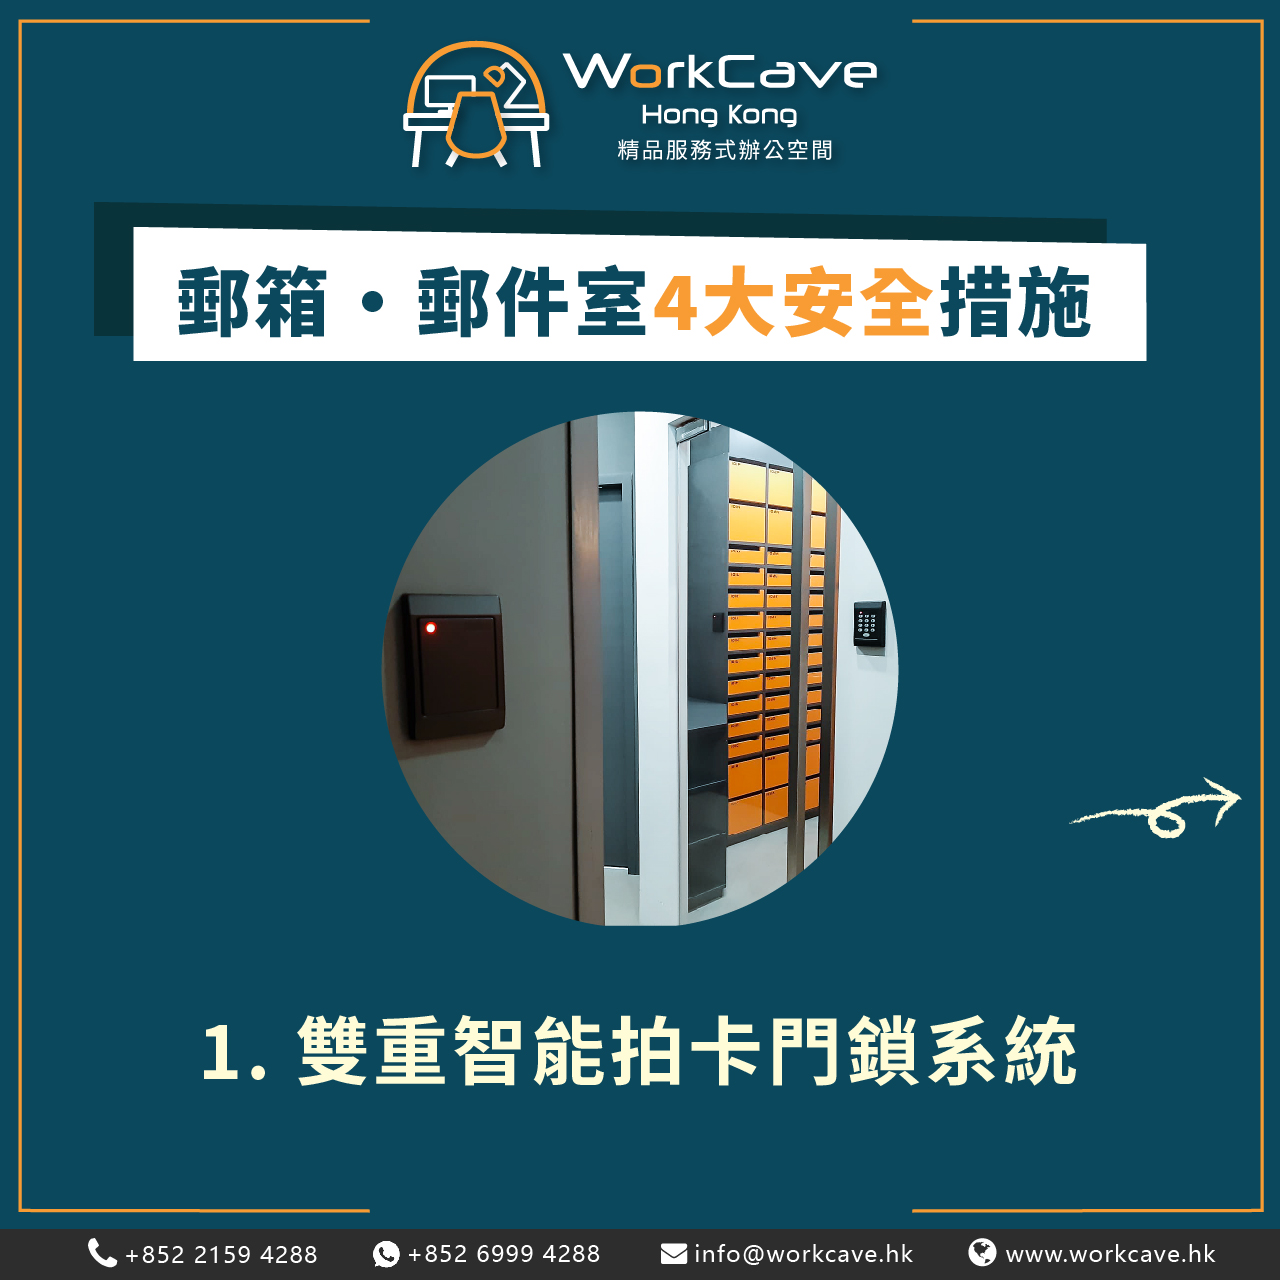 Two-tier mail room access by smart card